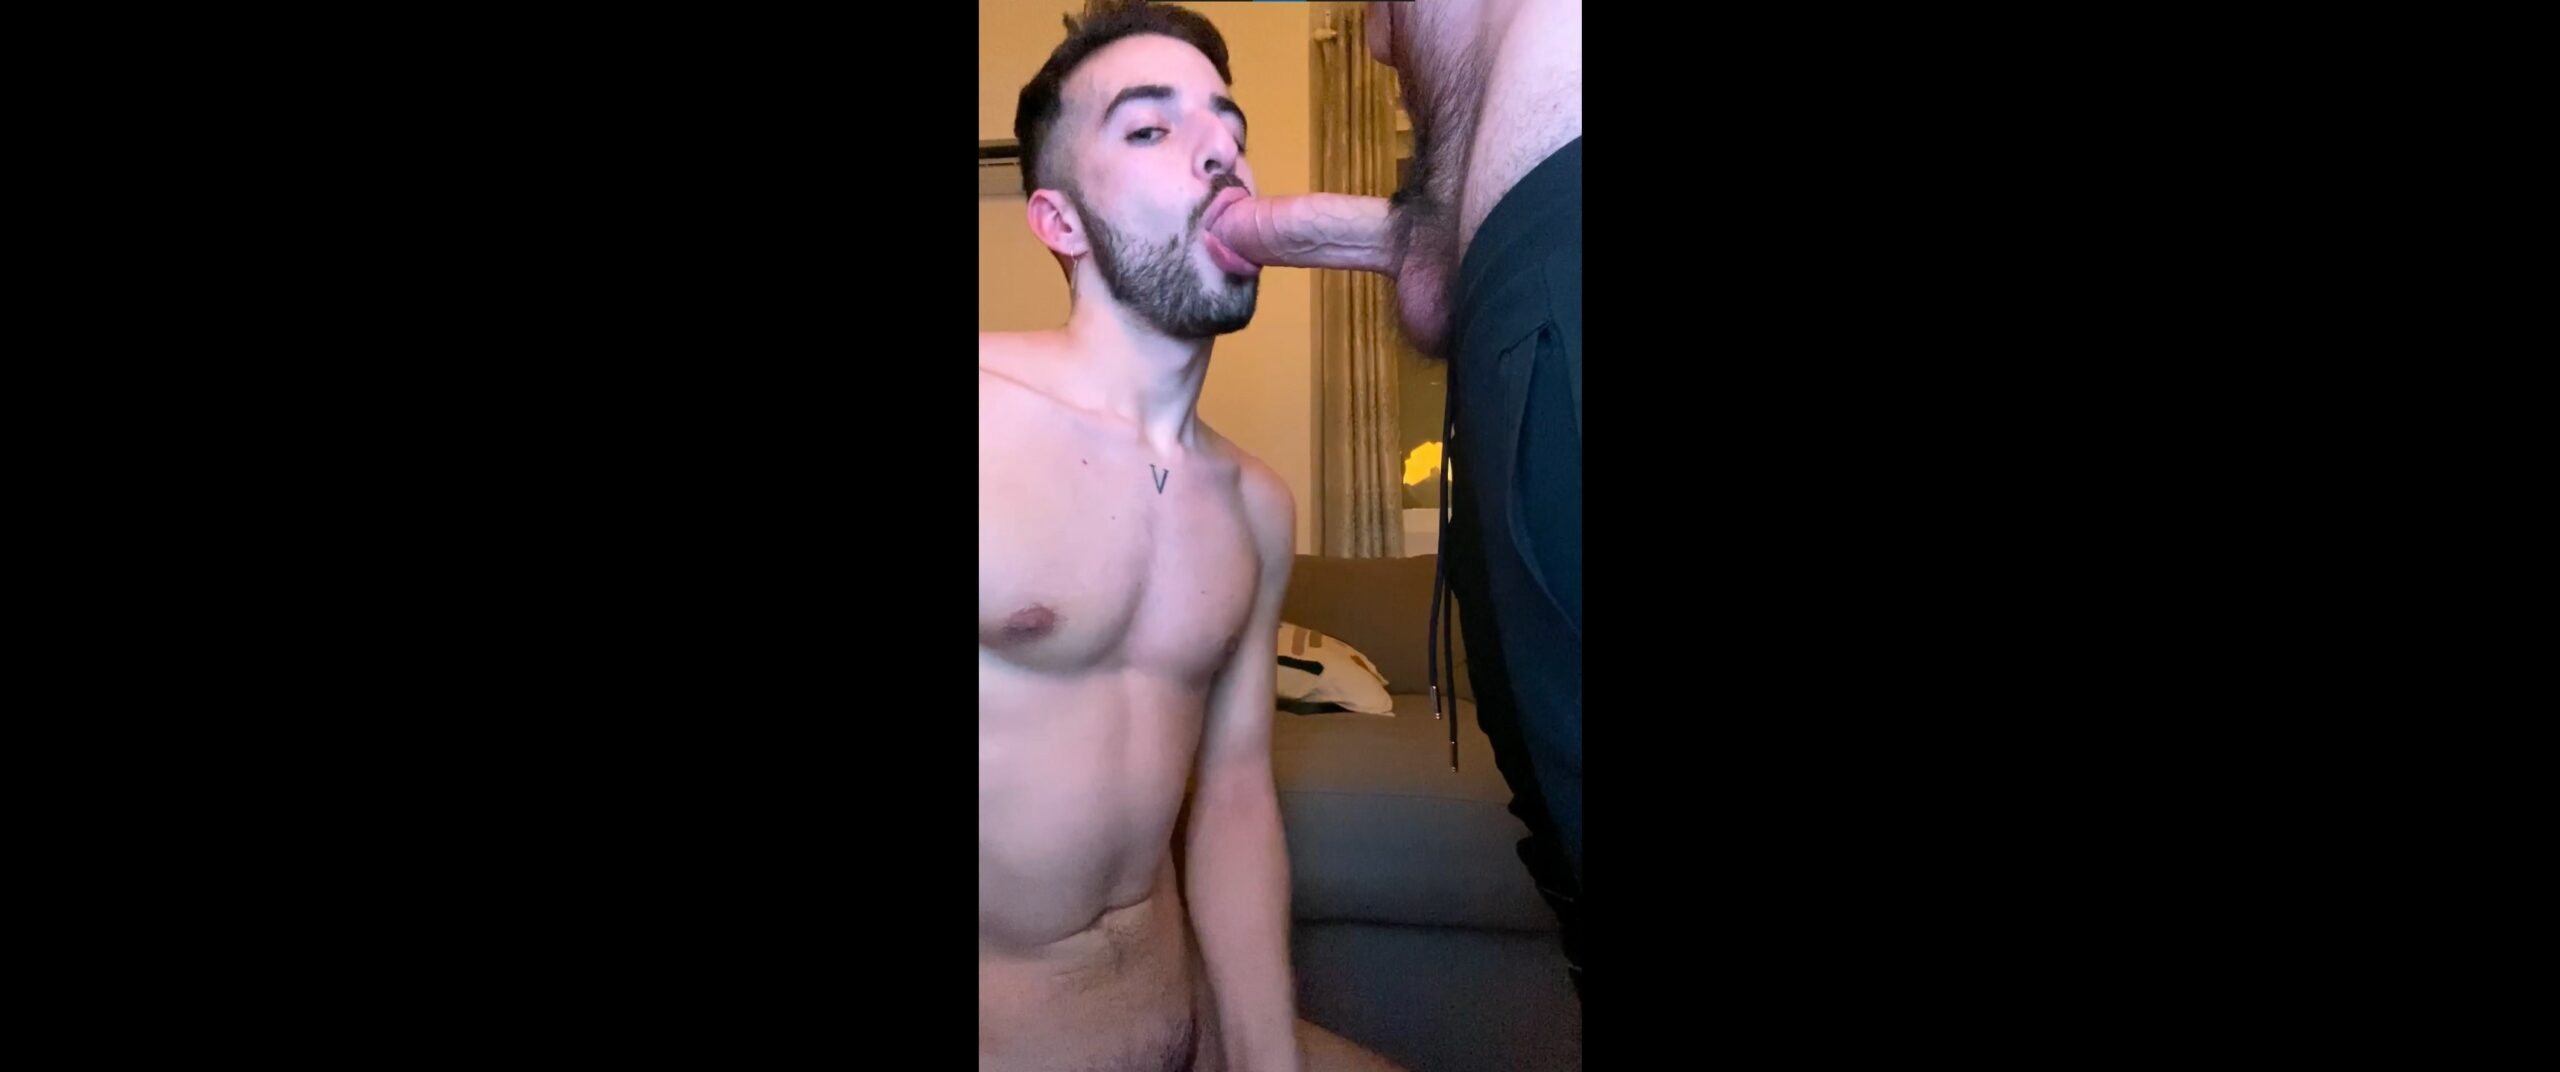 Getting face fucked by a thick cock - Andres Voight (andresvoight)